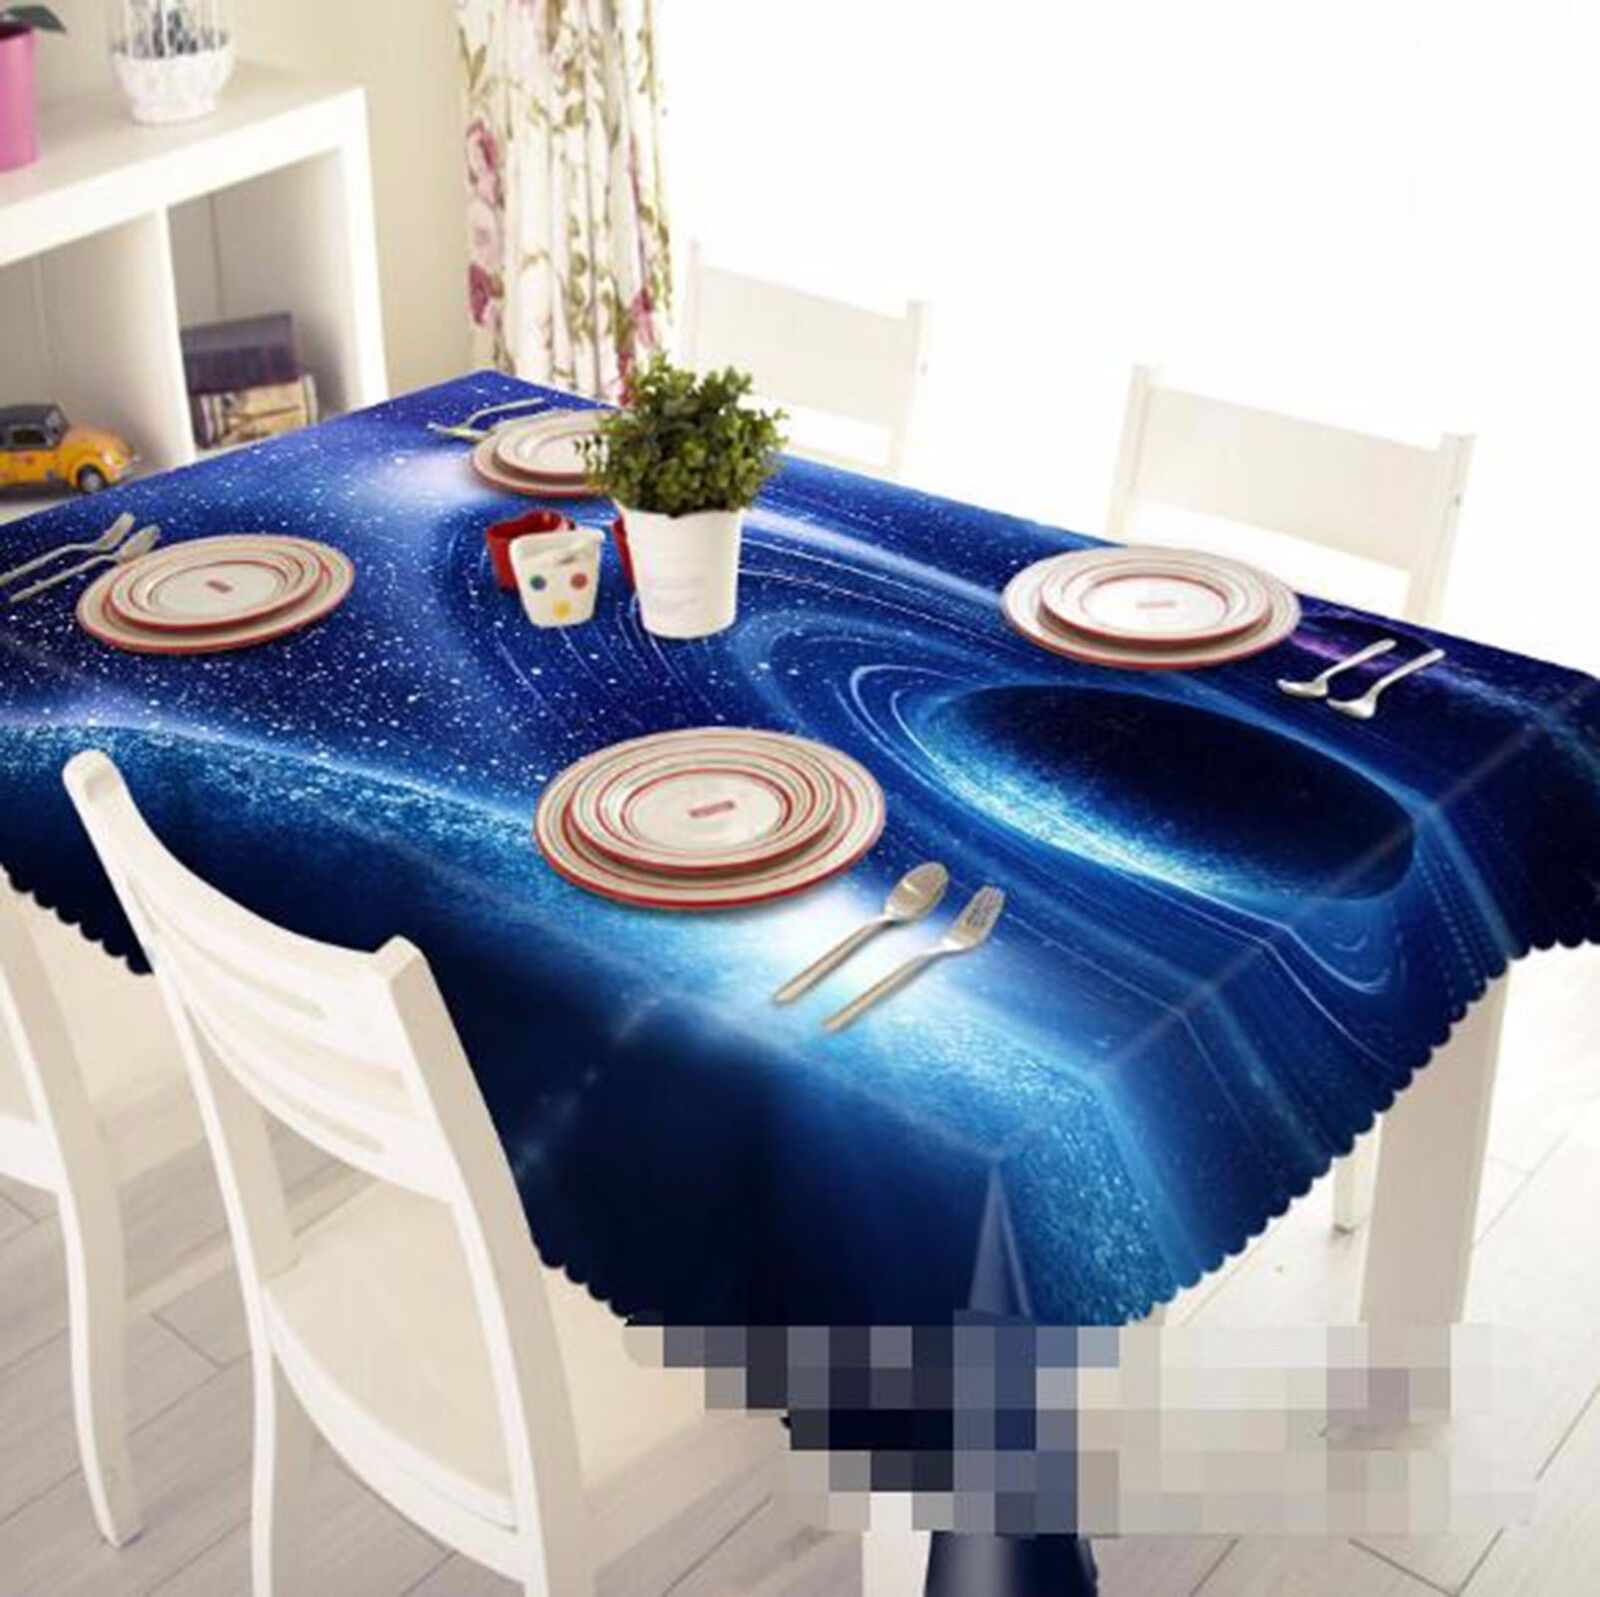 3D Vortex 6 Nappe Table Cover Cloth fête d'anniversaire AJ papier peint Royaume-Uni Citron